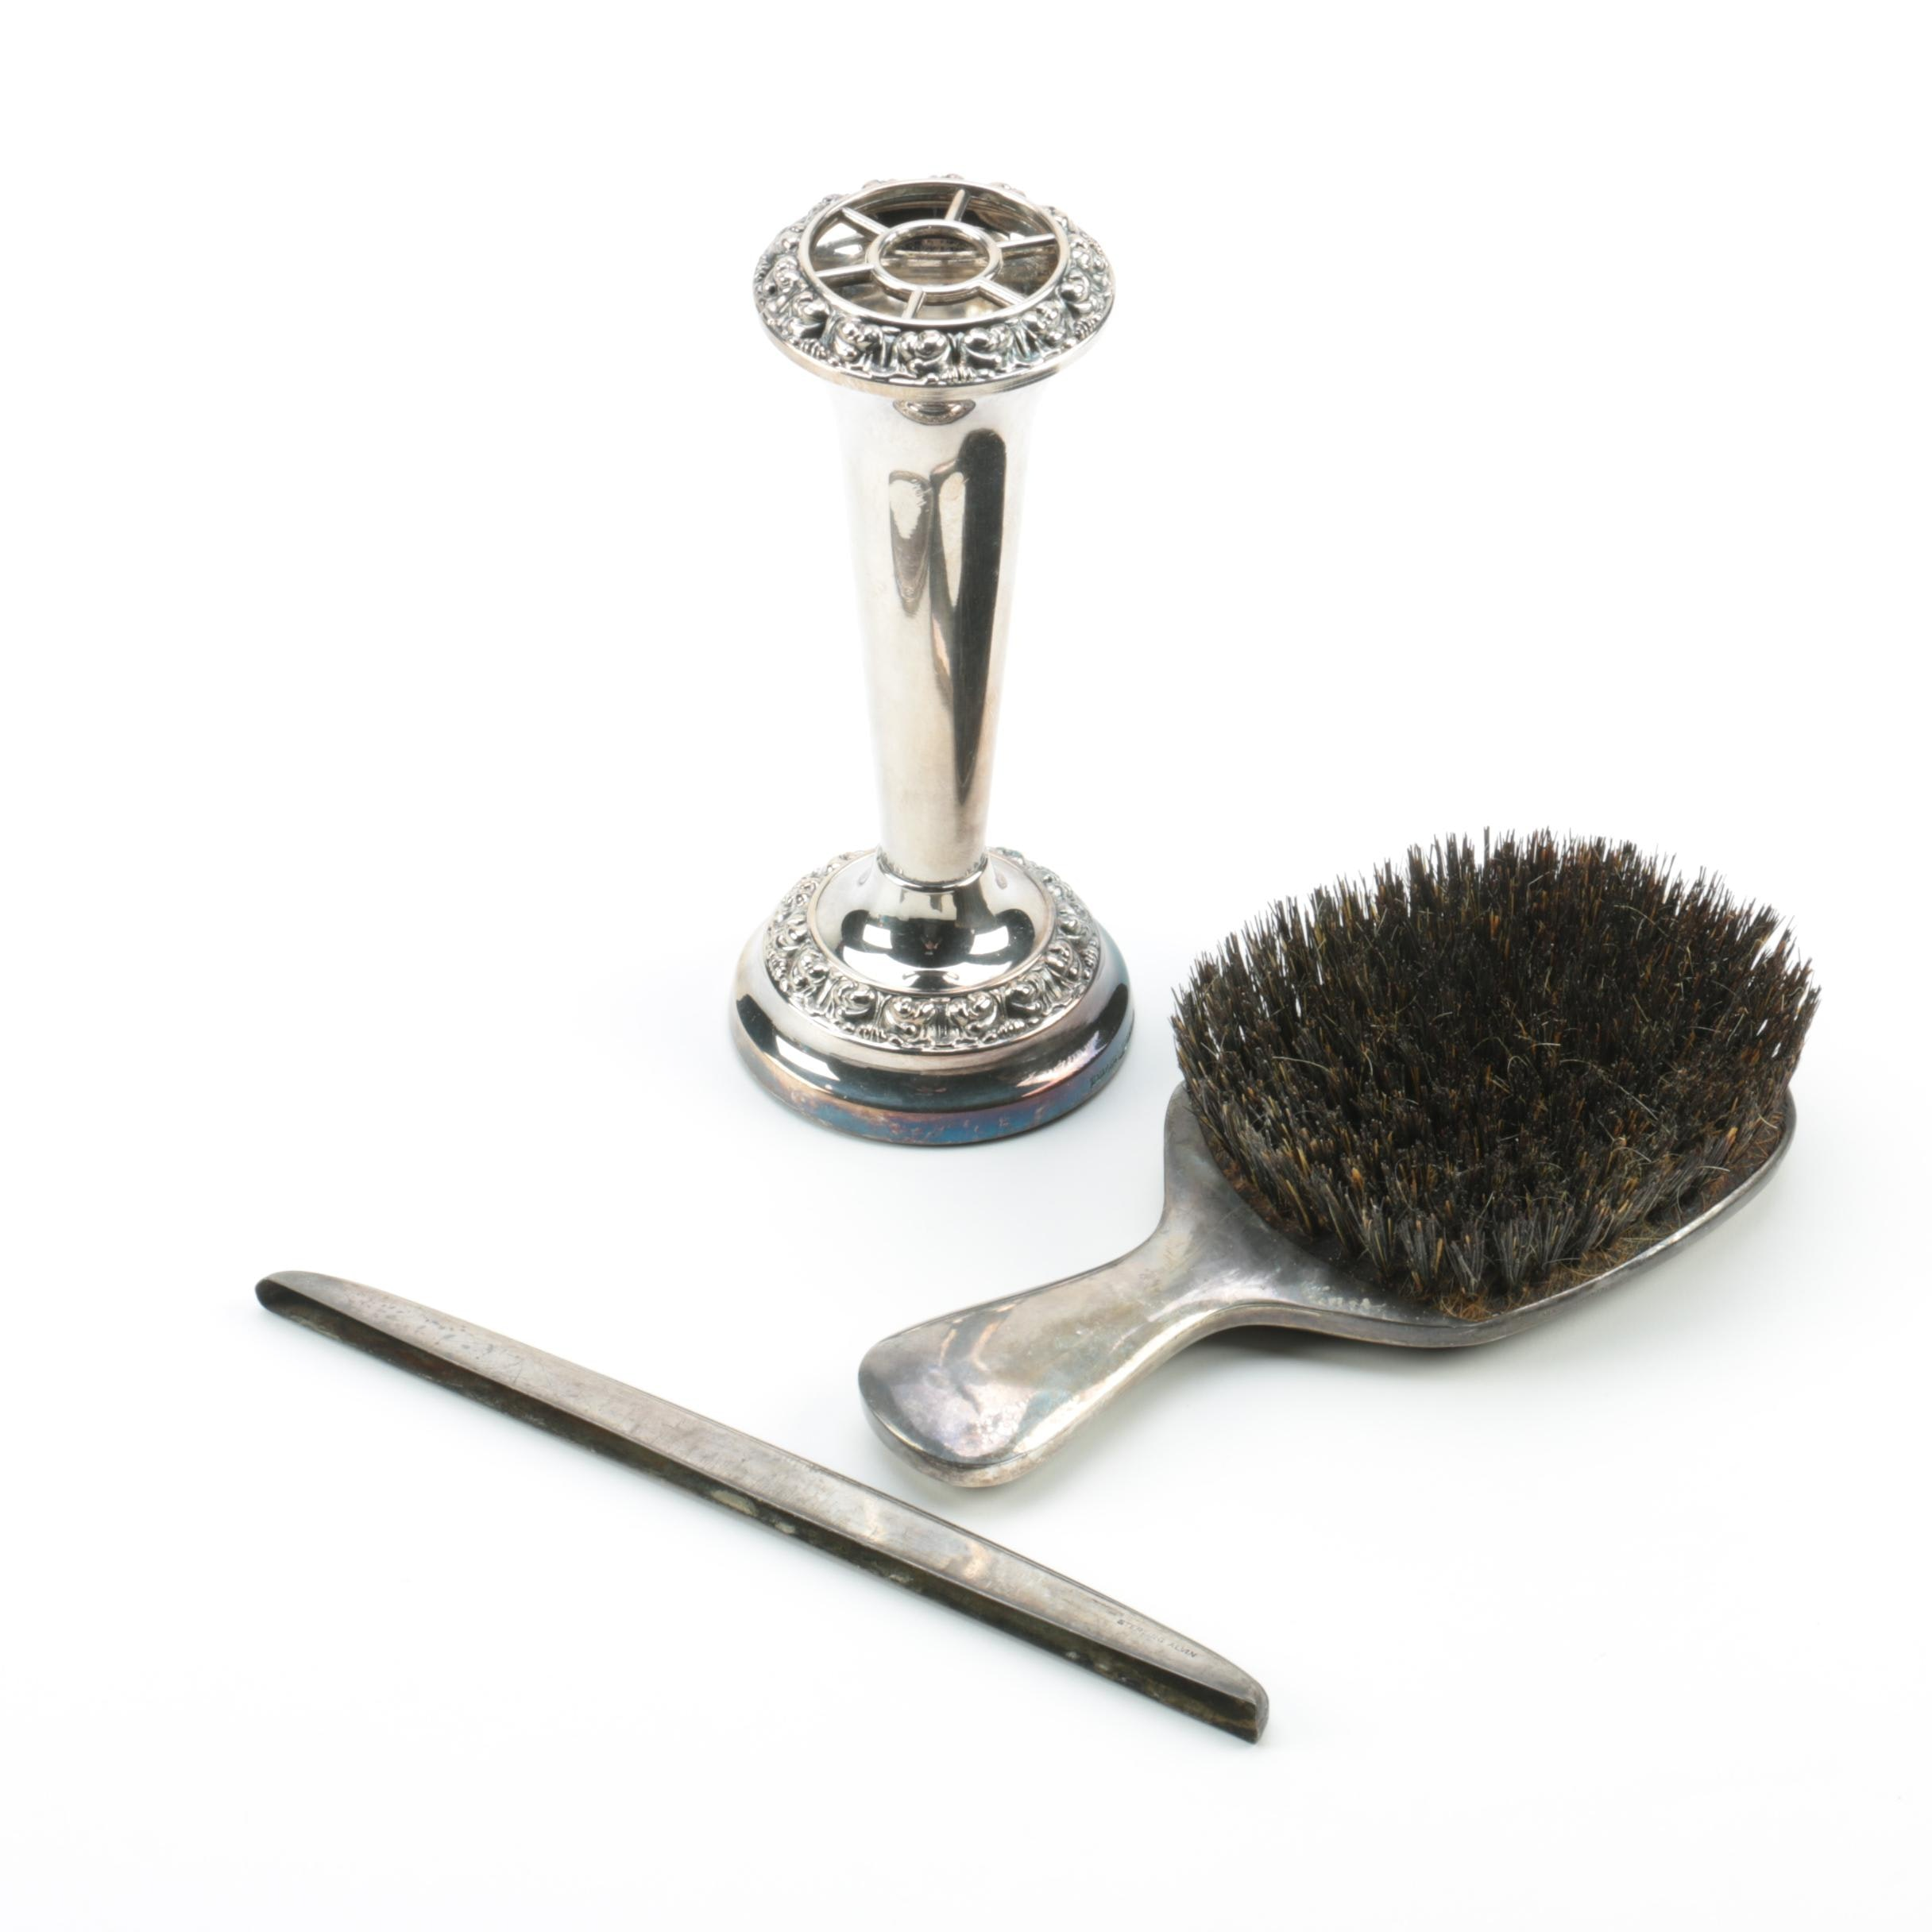 Alvin Sterling Silver Brush and Comb Handle with Ianthe Silver-Plated Vase